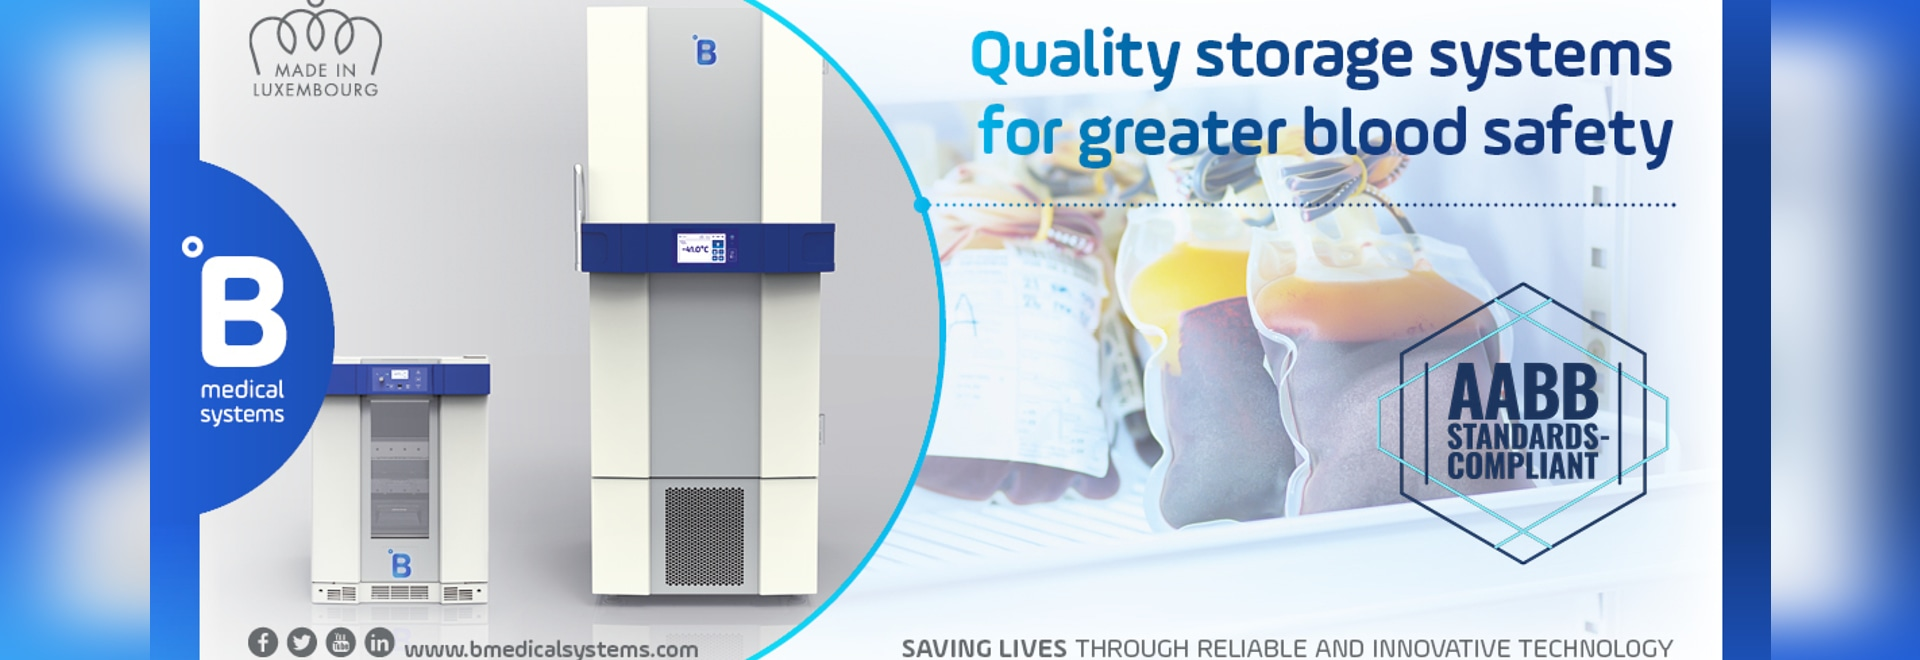 B Medical Systems' Blood Storage Solutions Officially Approved as AABB Standards-Compliant